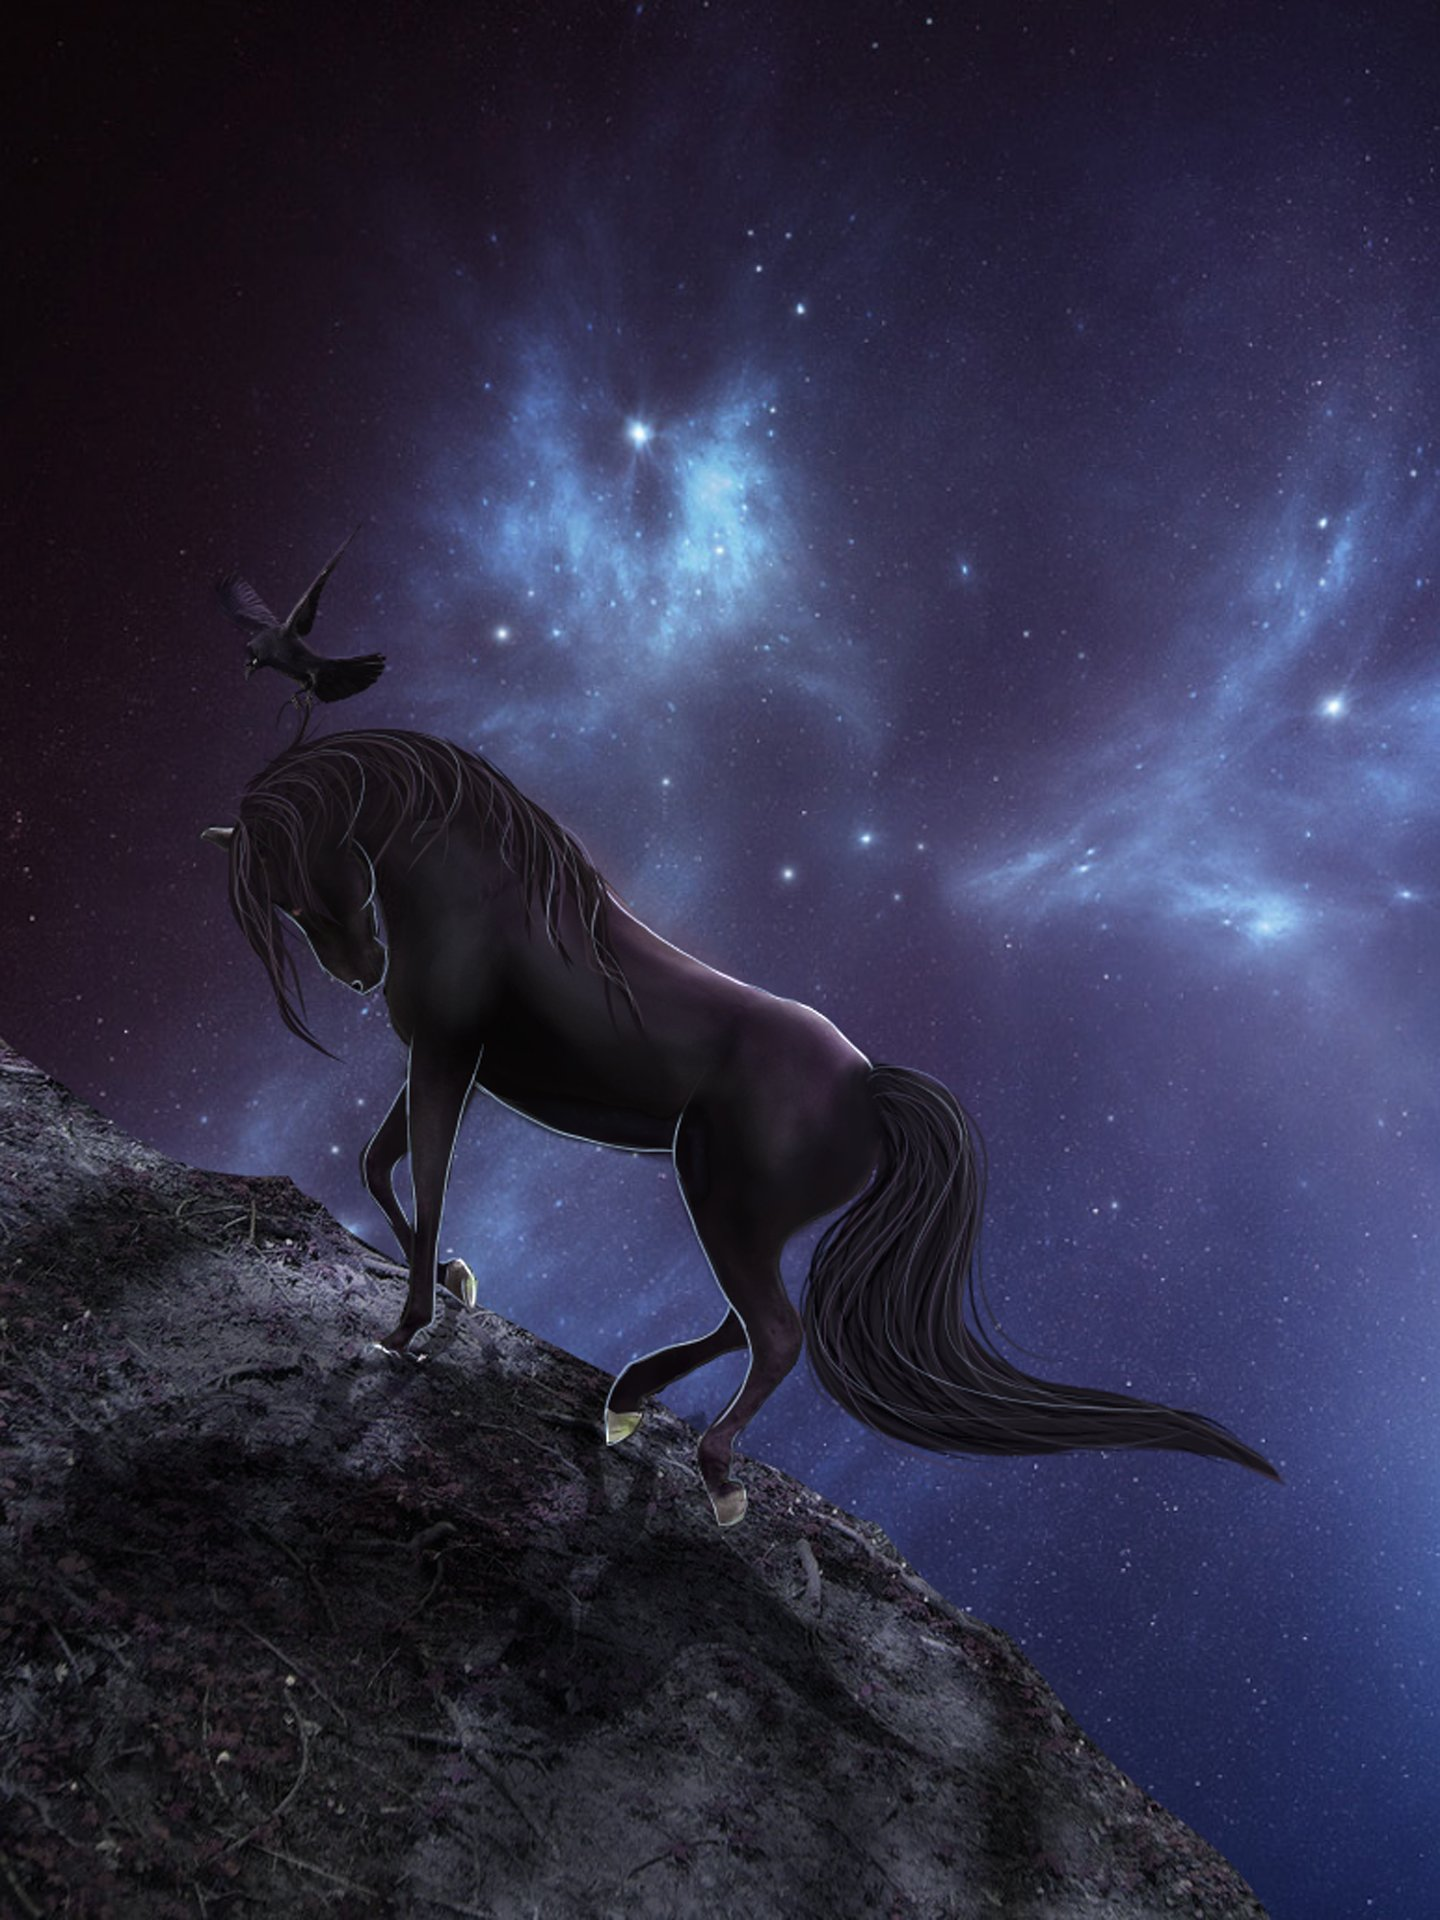 Unicorn 3d Wallpaper Fantasy Animal Horse Beautiful Sky Grow Wallpaper